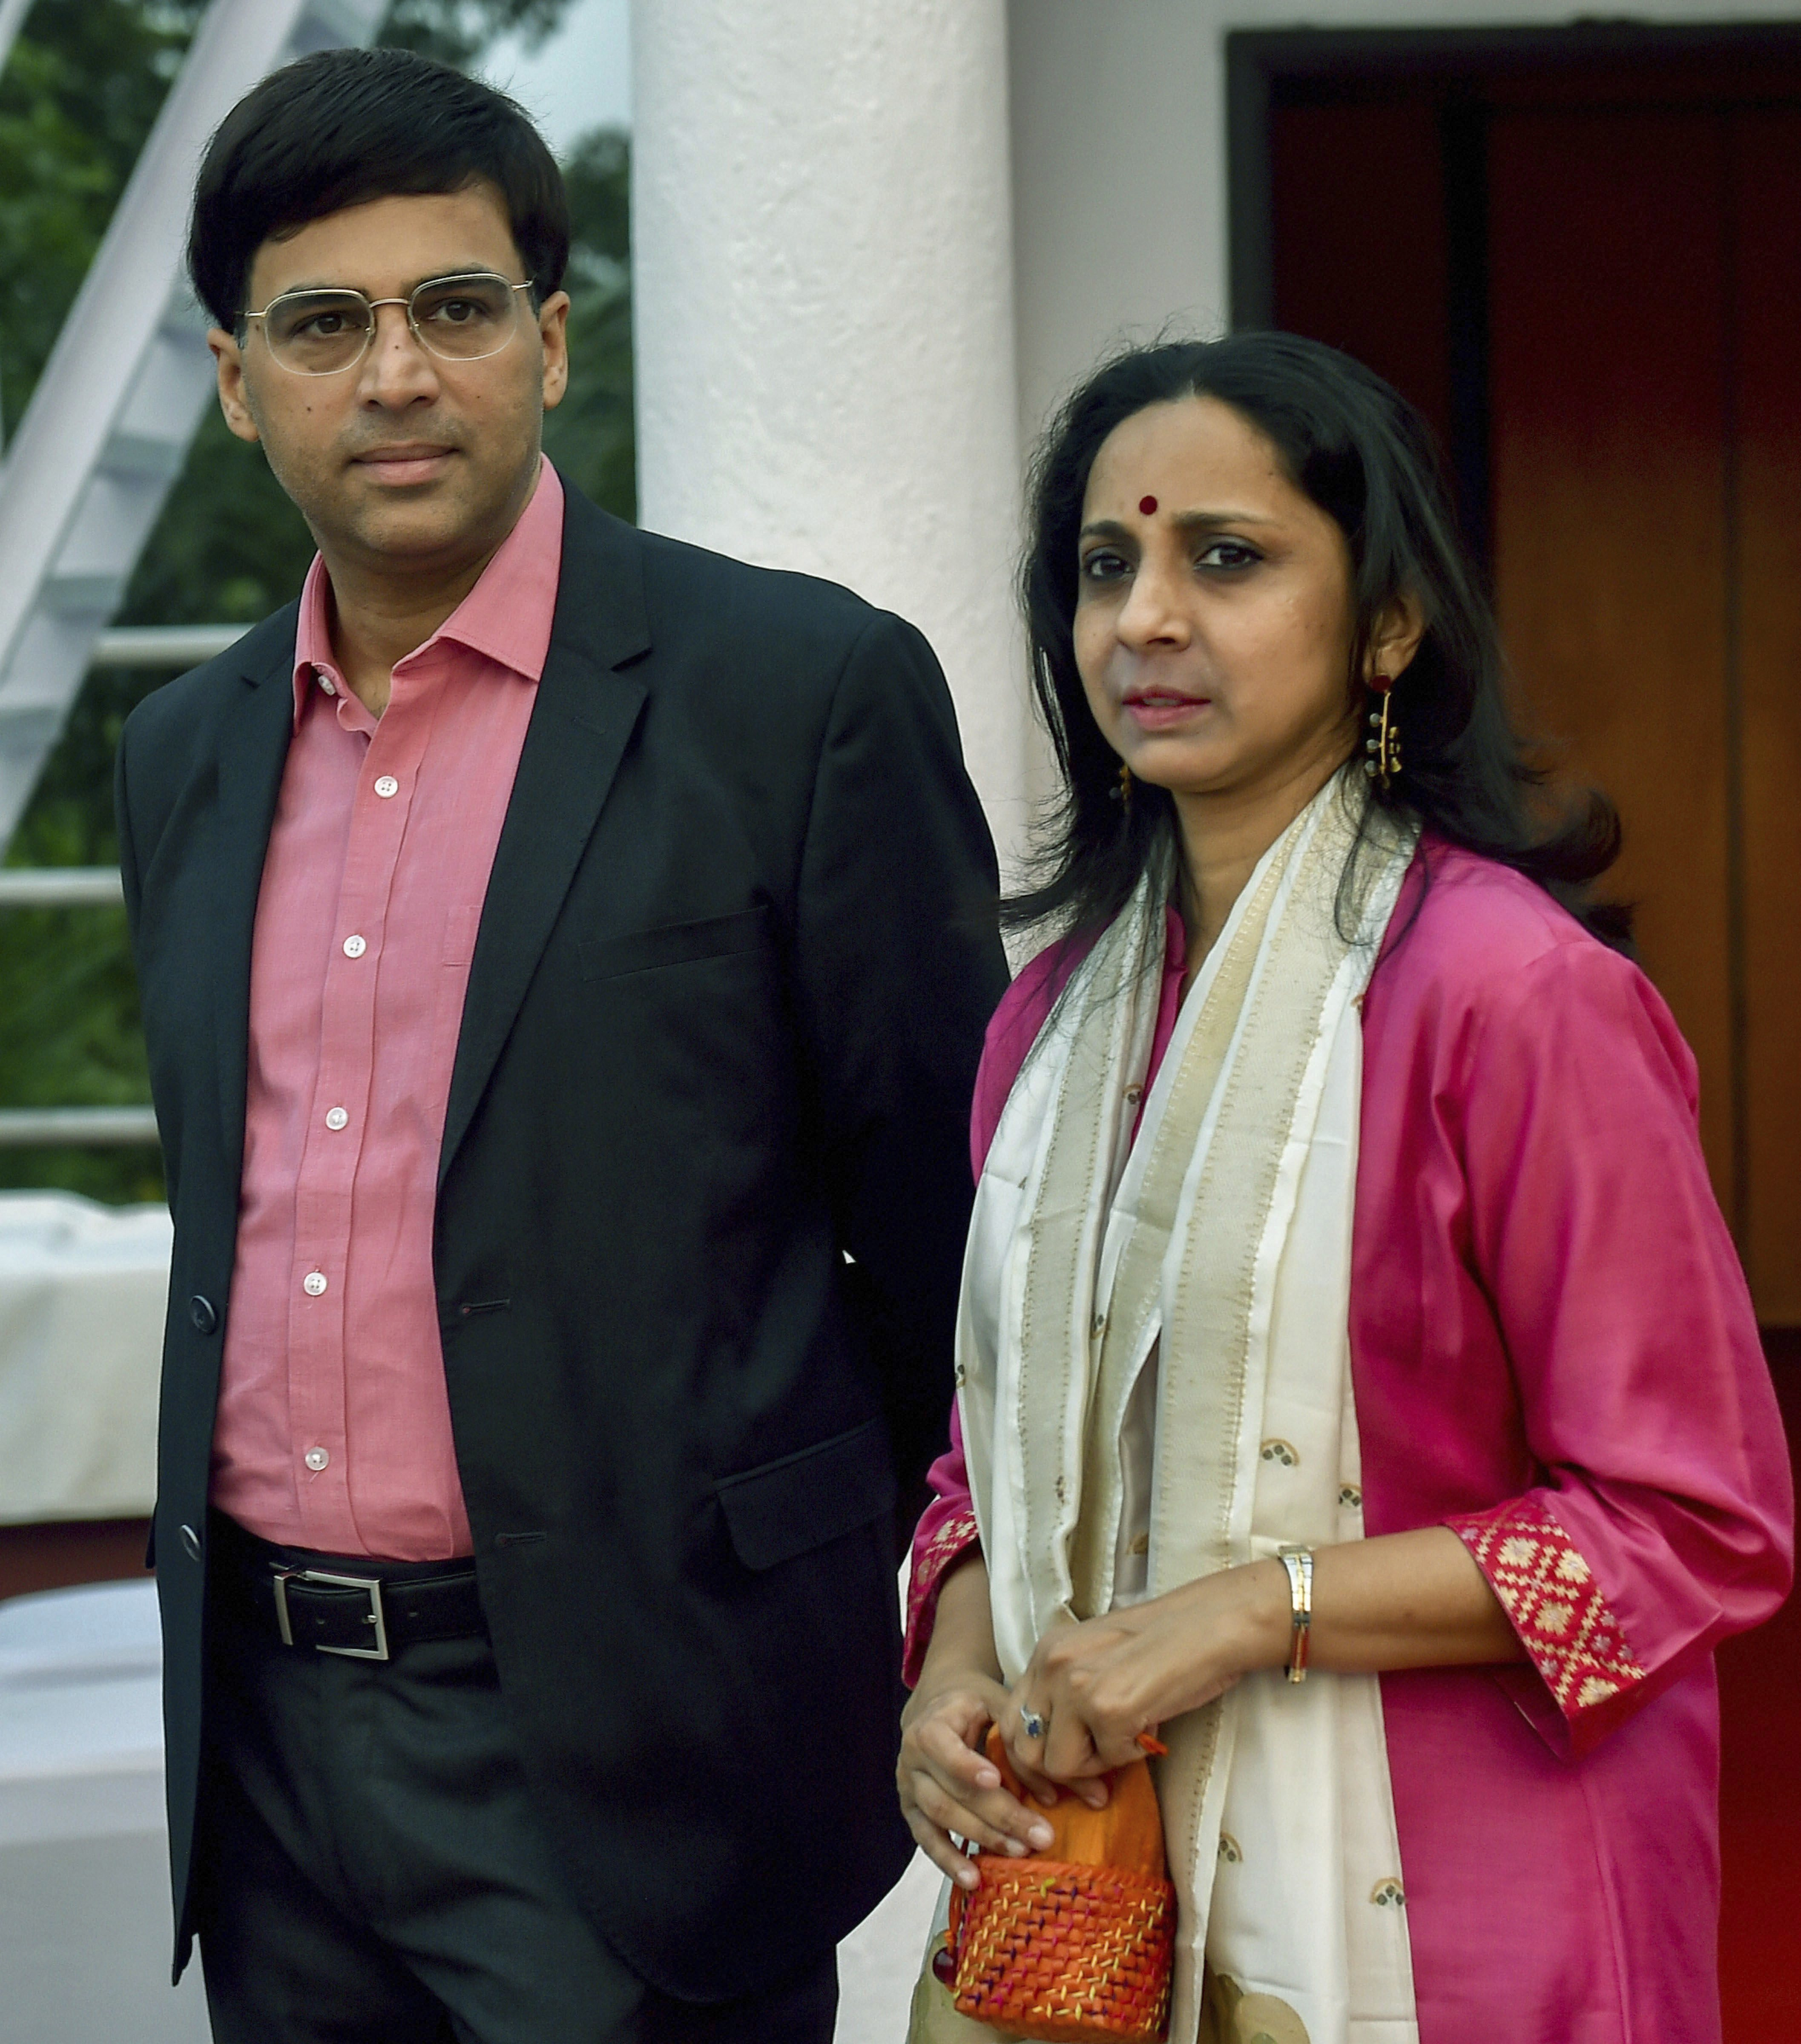 Five times World Champion Viswanathan Anand and his wife Aruna Anand on their arrival for the draw of Chess India 2018 tournament, in Kolkata - PTI